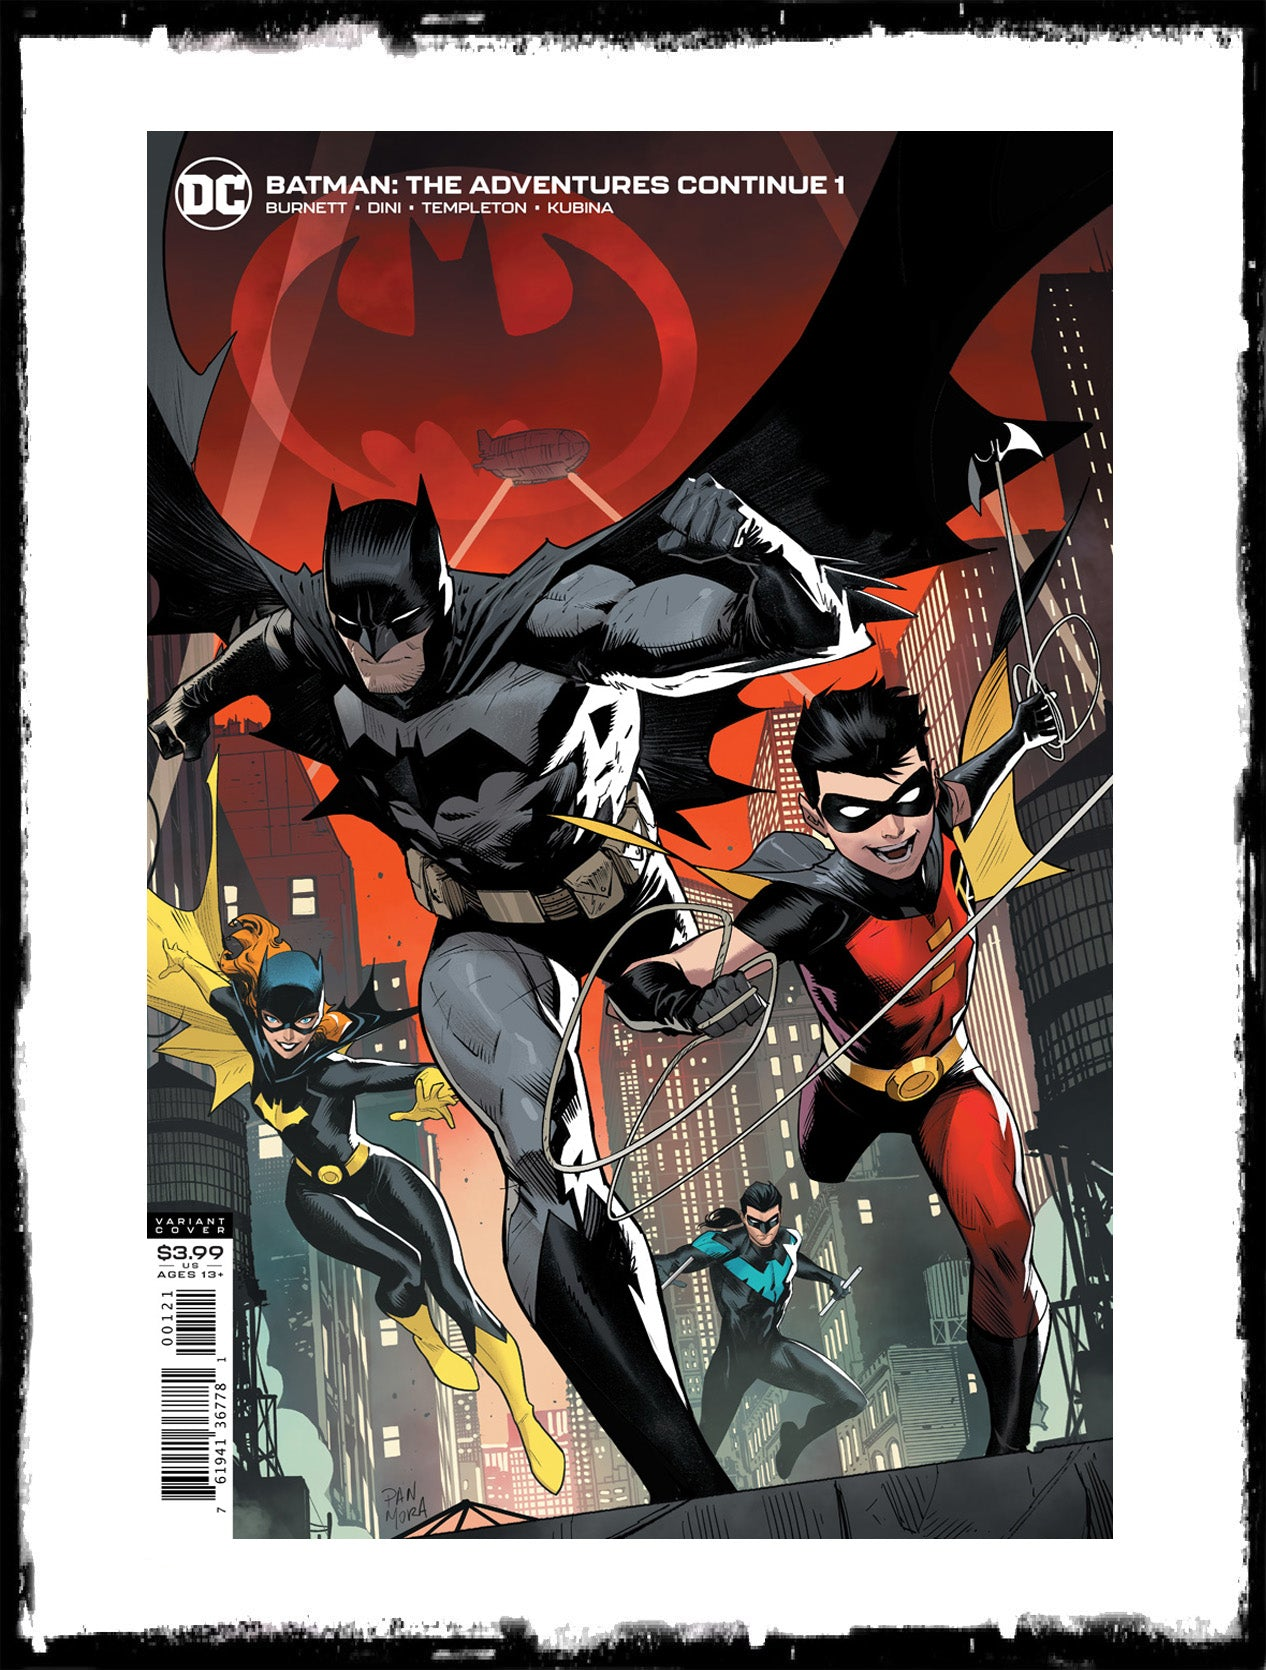 BATMAN: THE ADVENTURES CONTINUE - #1 DAN MORA COVER (2020 - NM)